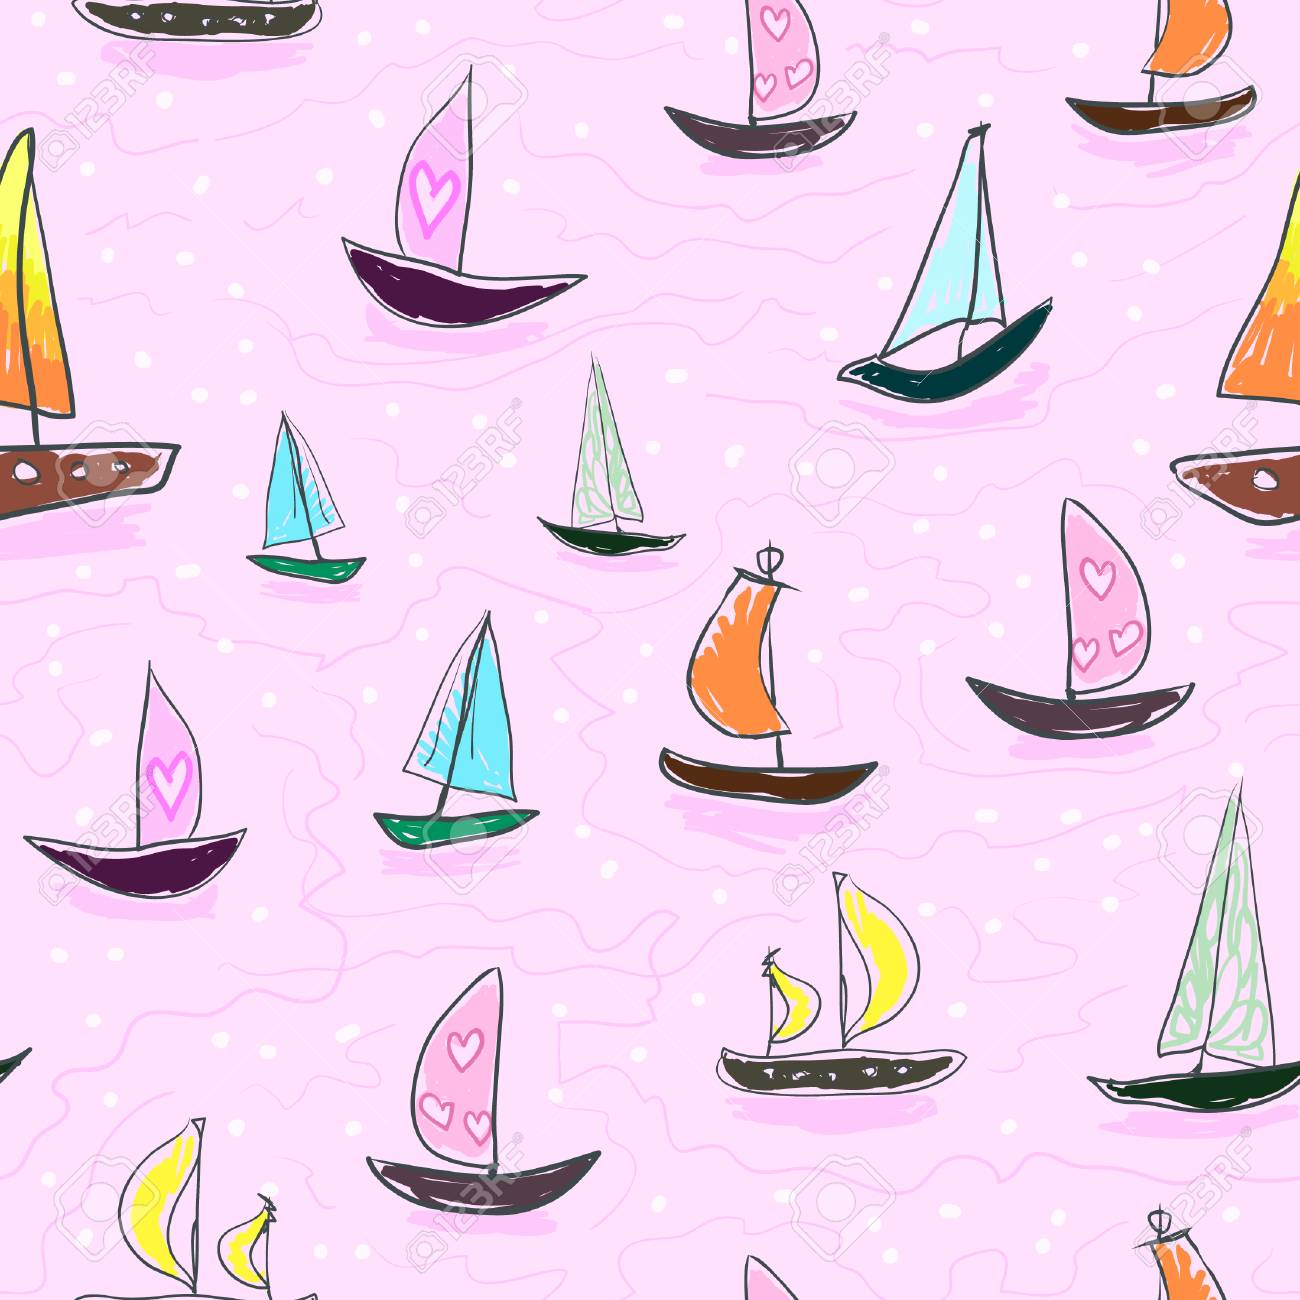 Seamless baby kids pattern Hand drawing colorful yachts vector. Many small colored sail boats on a pink background. Flat style illustration. Summer, vacation, travel, heat, paradise. Print mask paper - 100566965